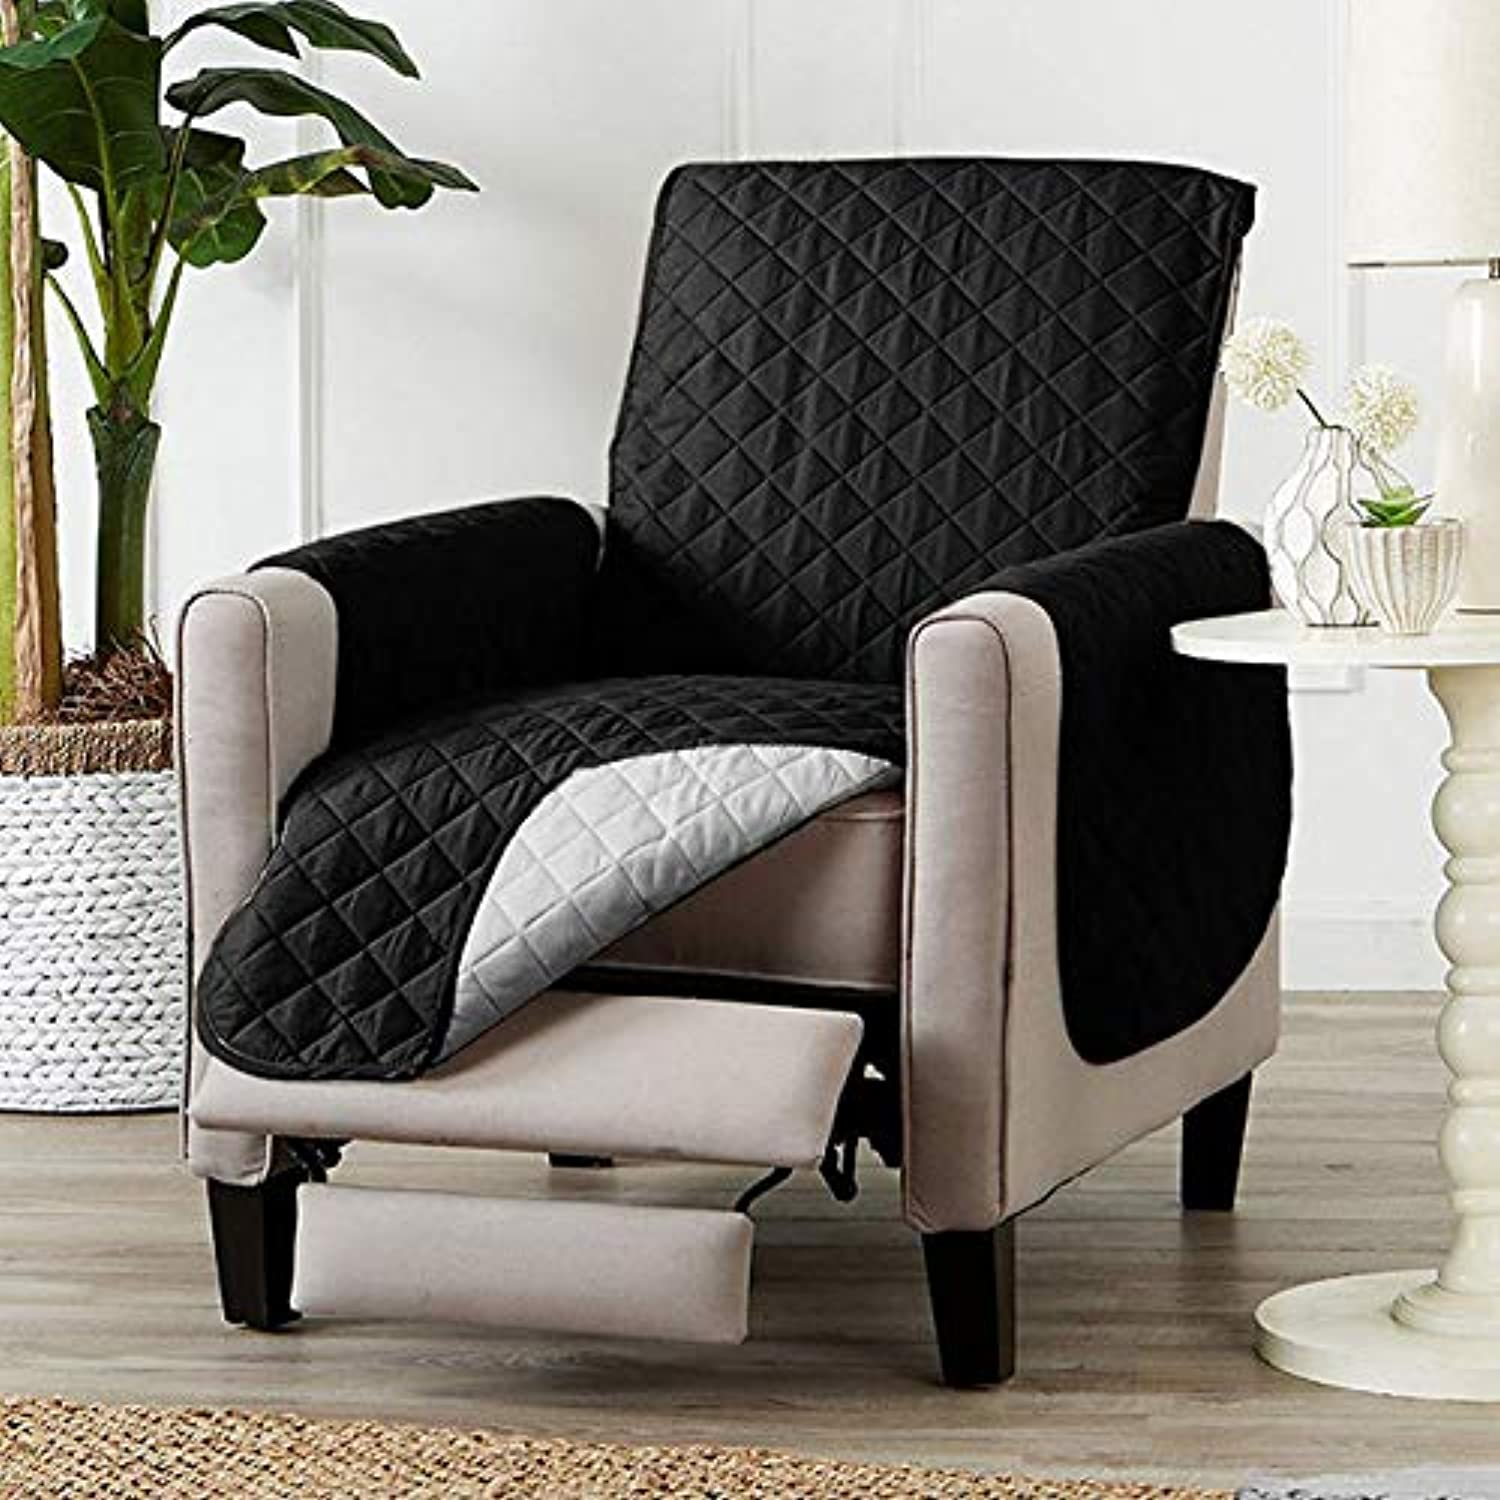 Solid color Couch Sofa Cover Washable Removable Towel Recliner Couch Covers Slipcovers Dog cat Pets Single Two Three Seat   Black, One Seat